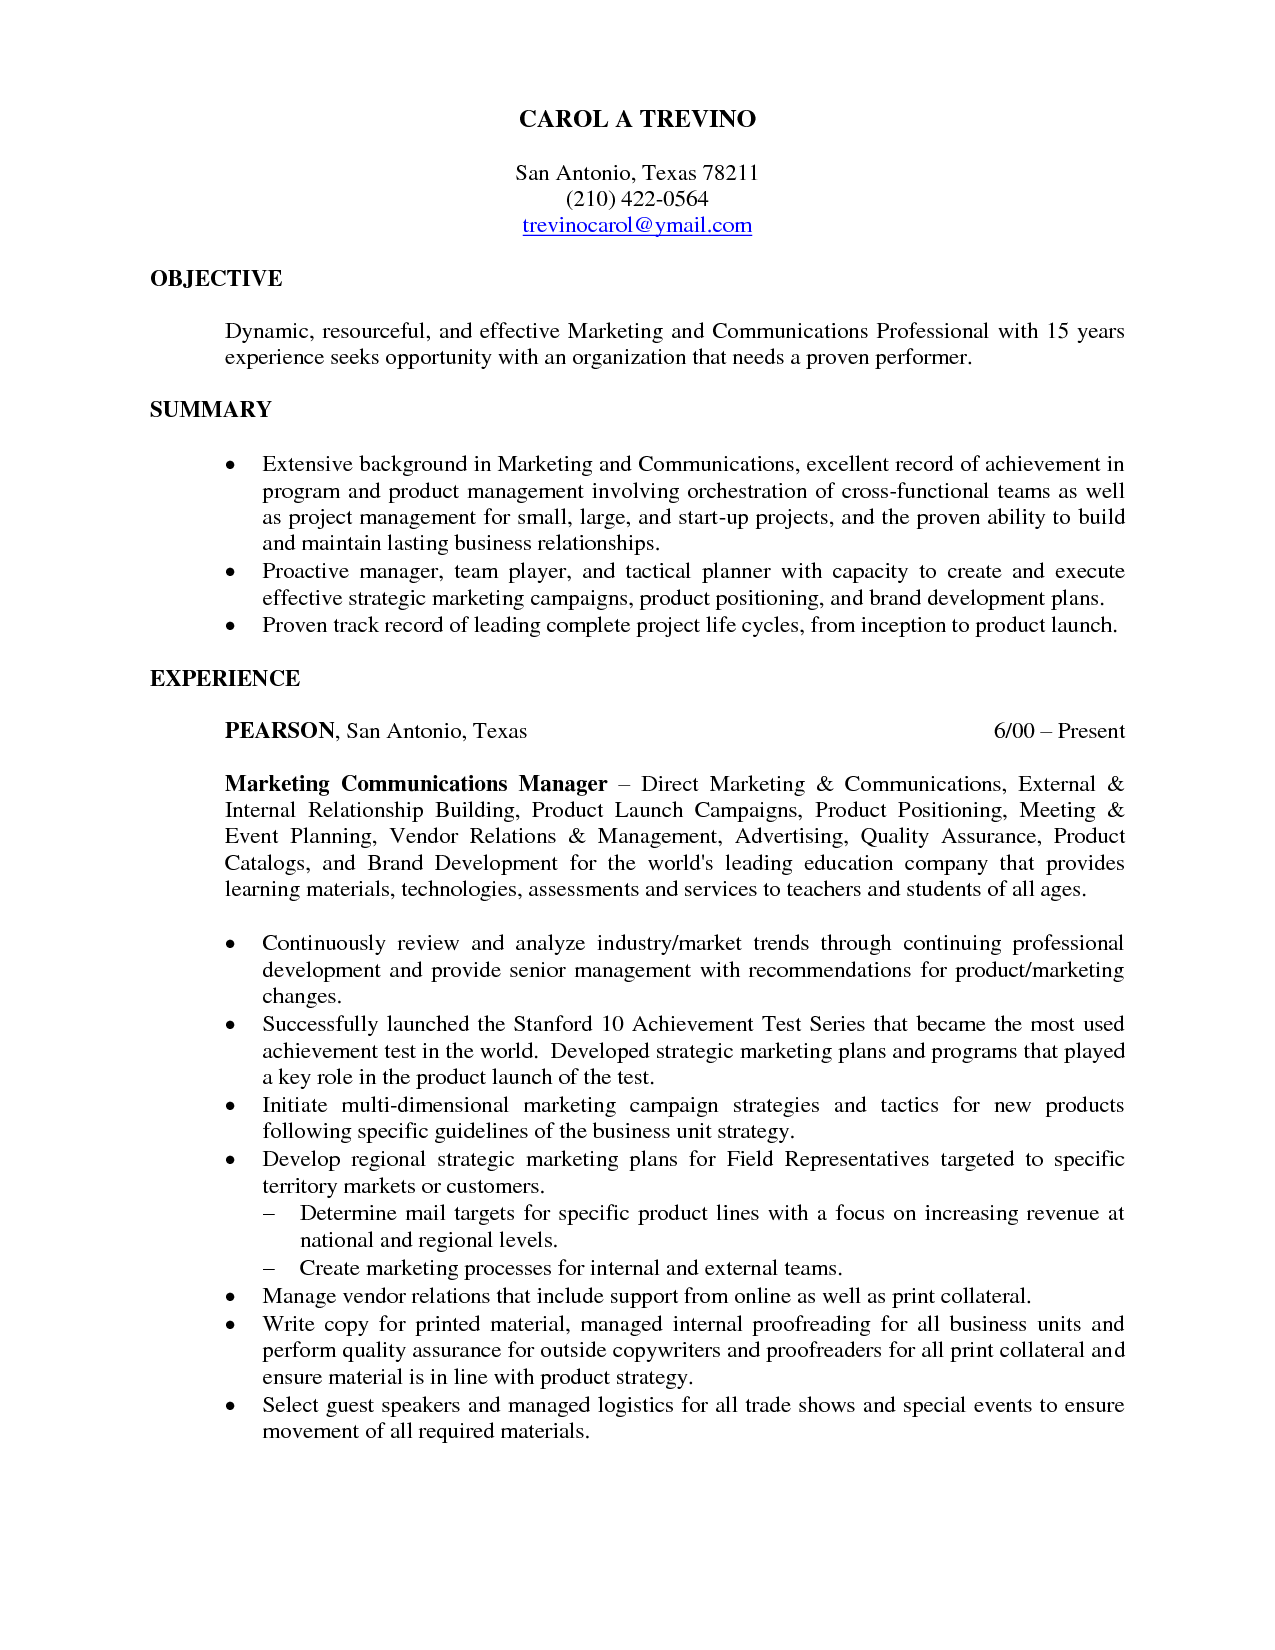 objective for marketing resumeregularmidwesterners resume - Objectives For Marketing Resume